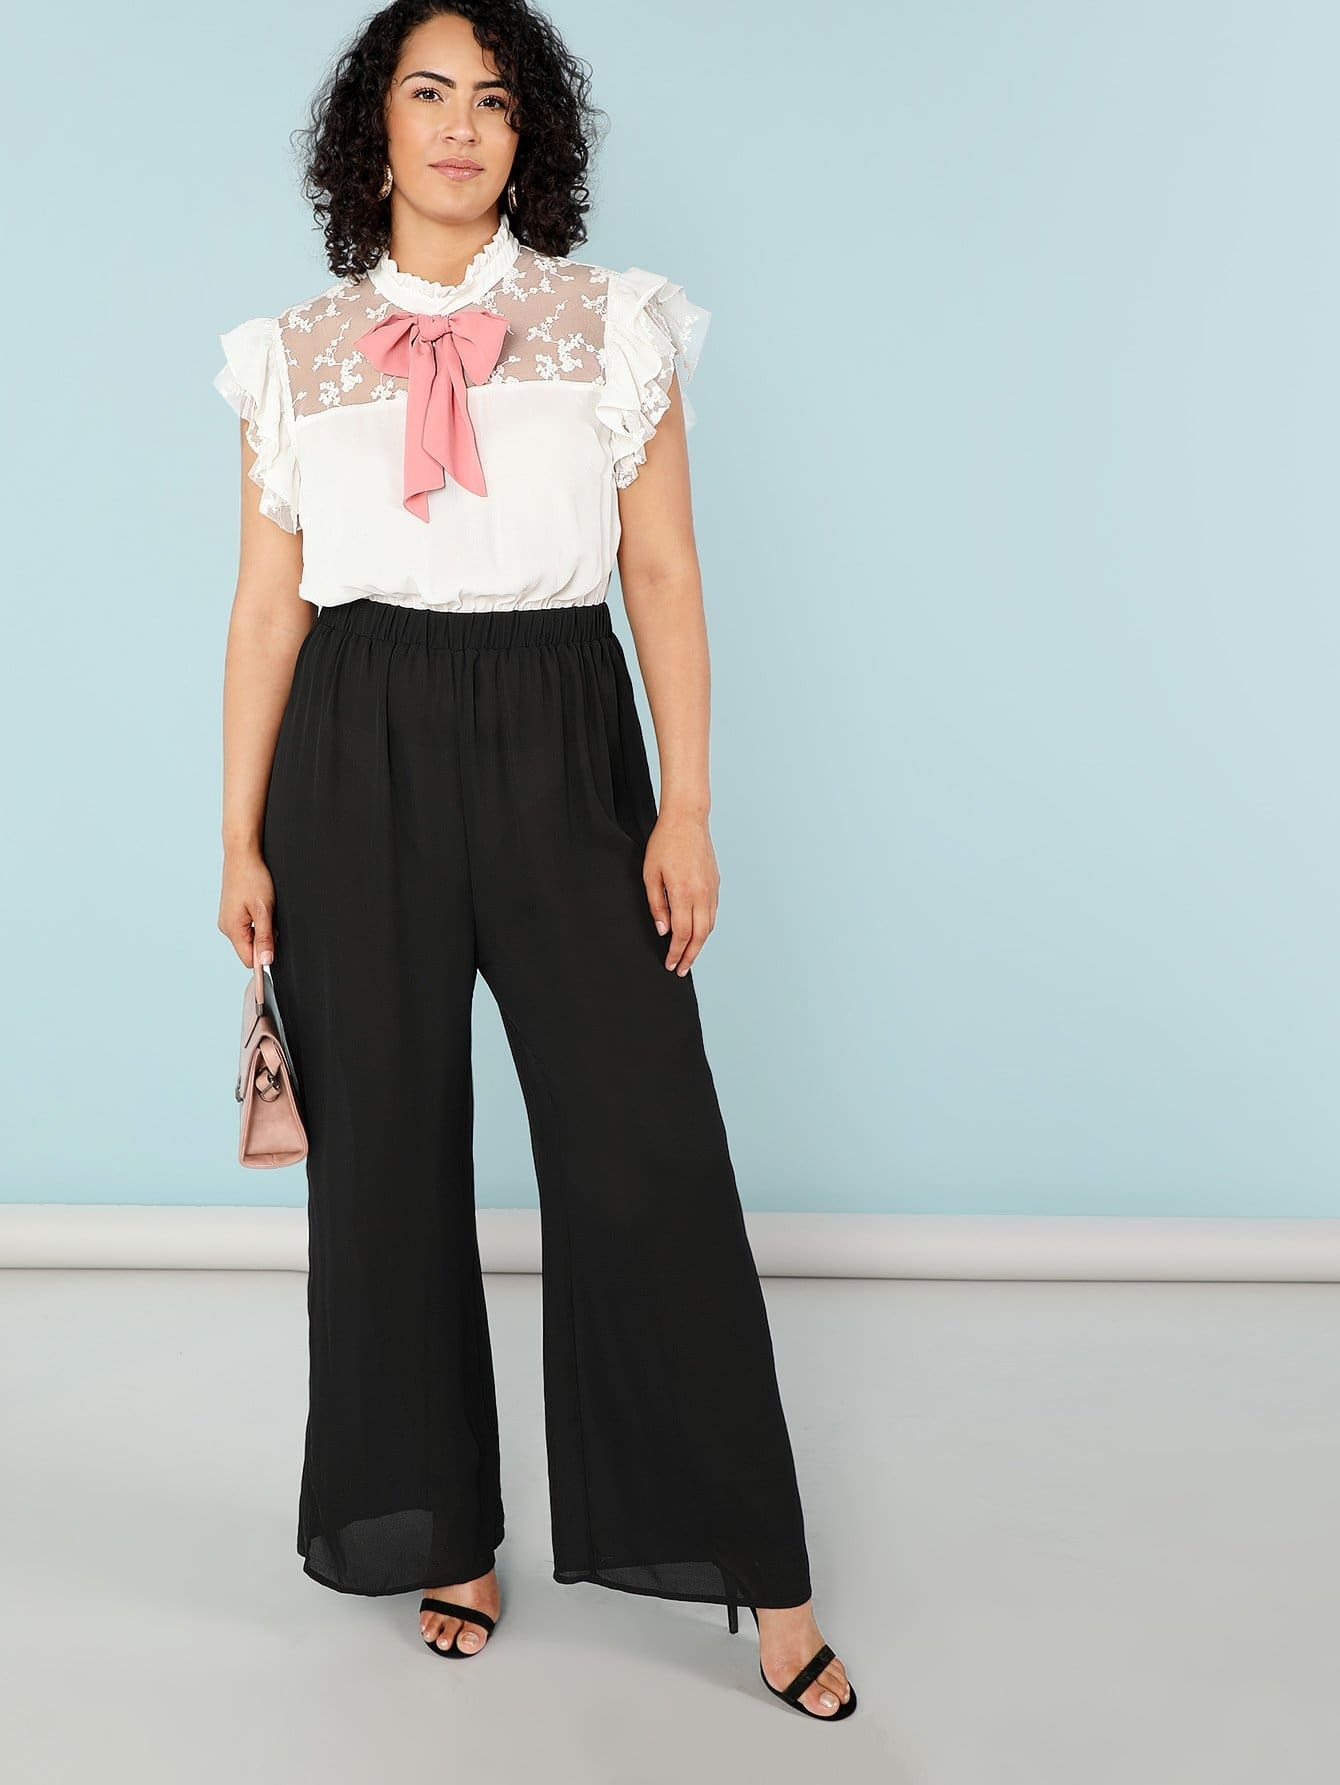 Plus Tie Neck Ruffle Trim Color Block Jumpsuit choker neck embroidered ruffle trim jumpsuit